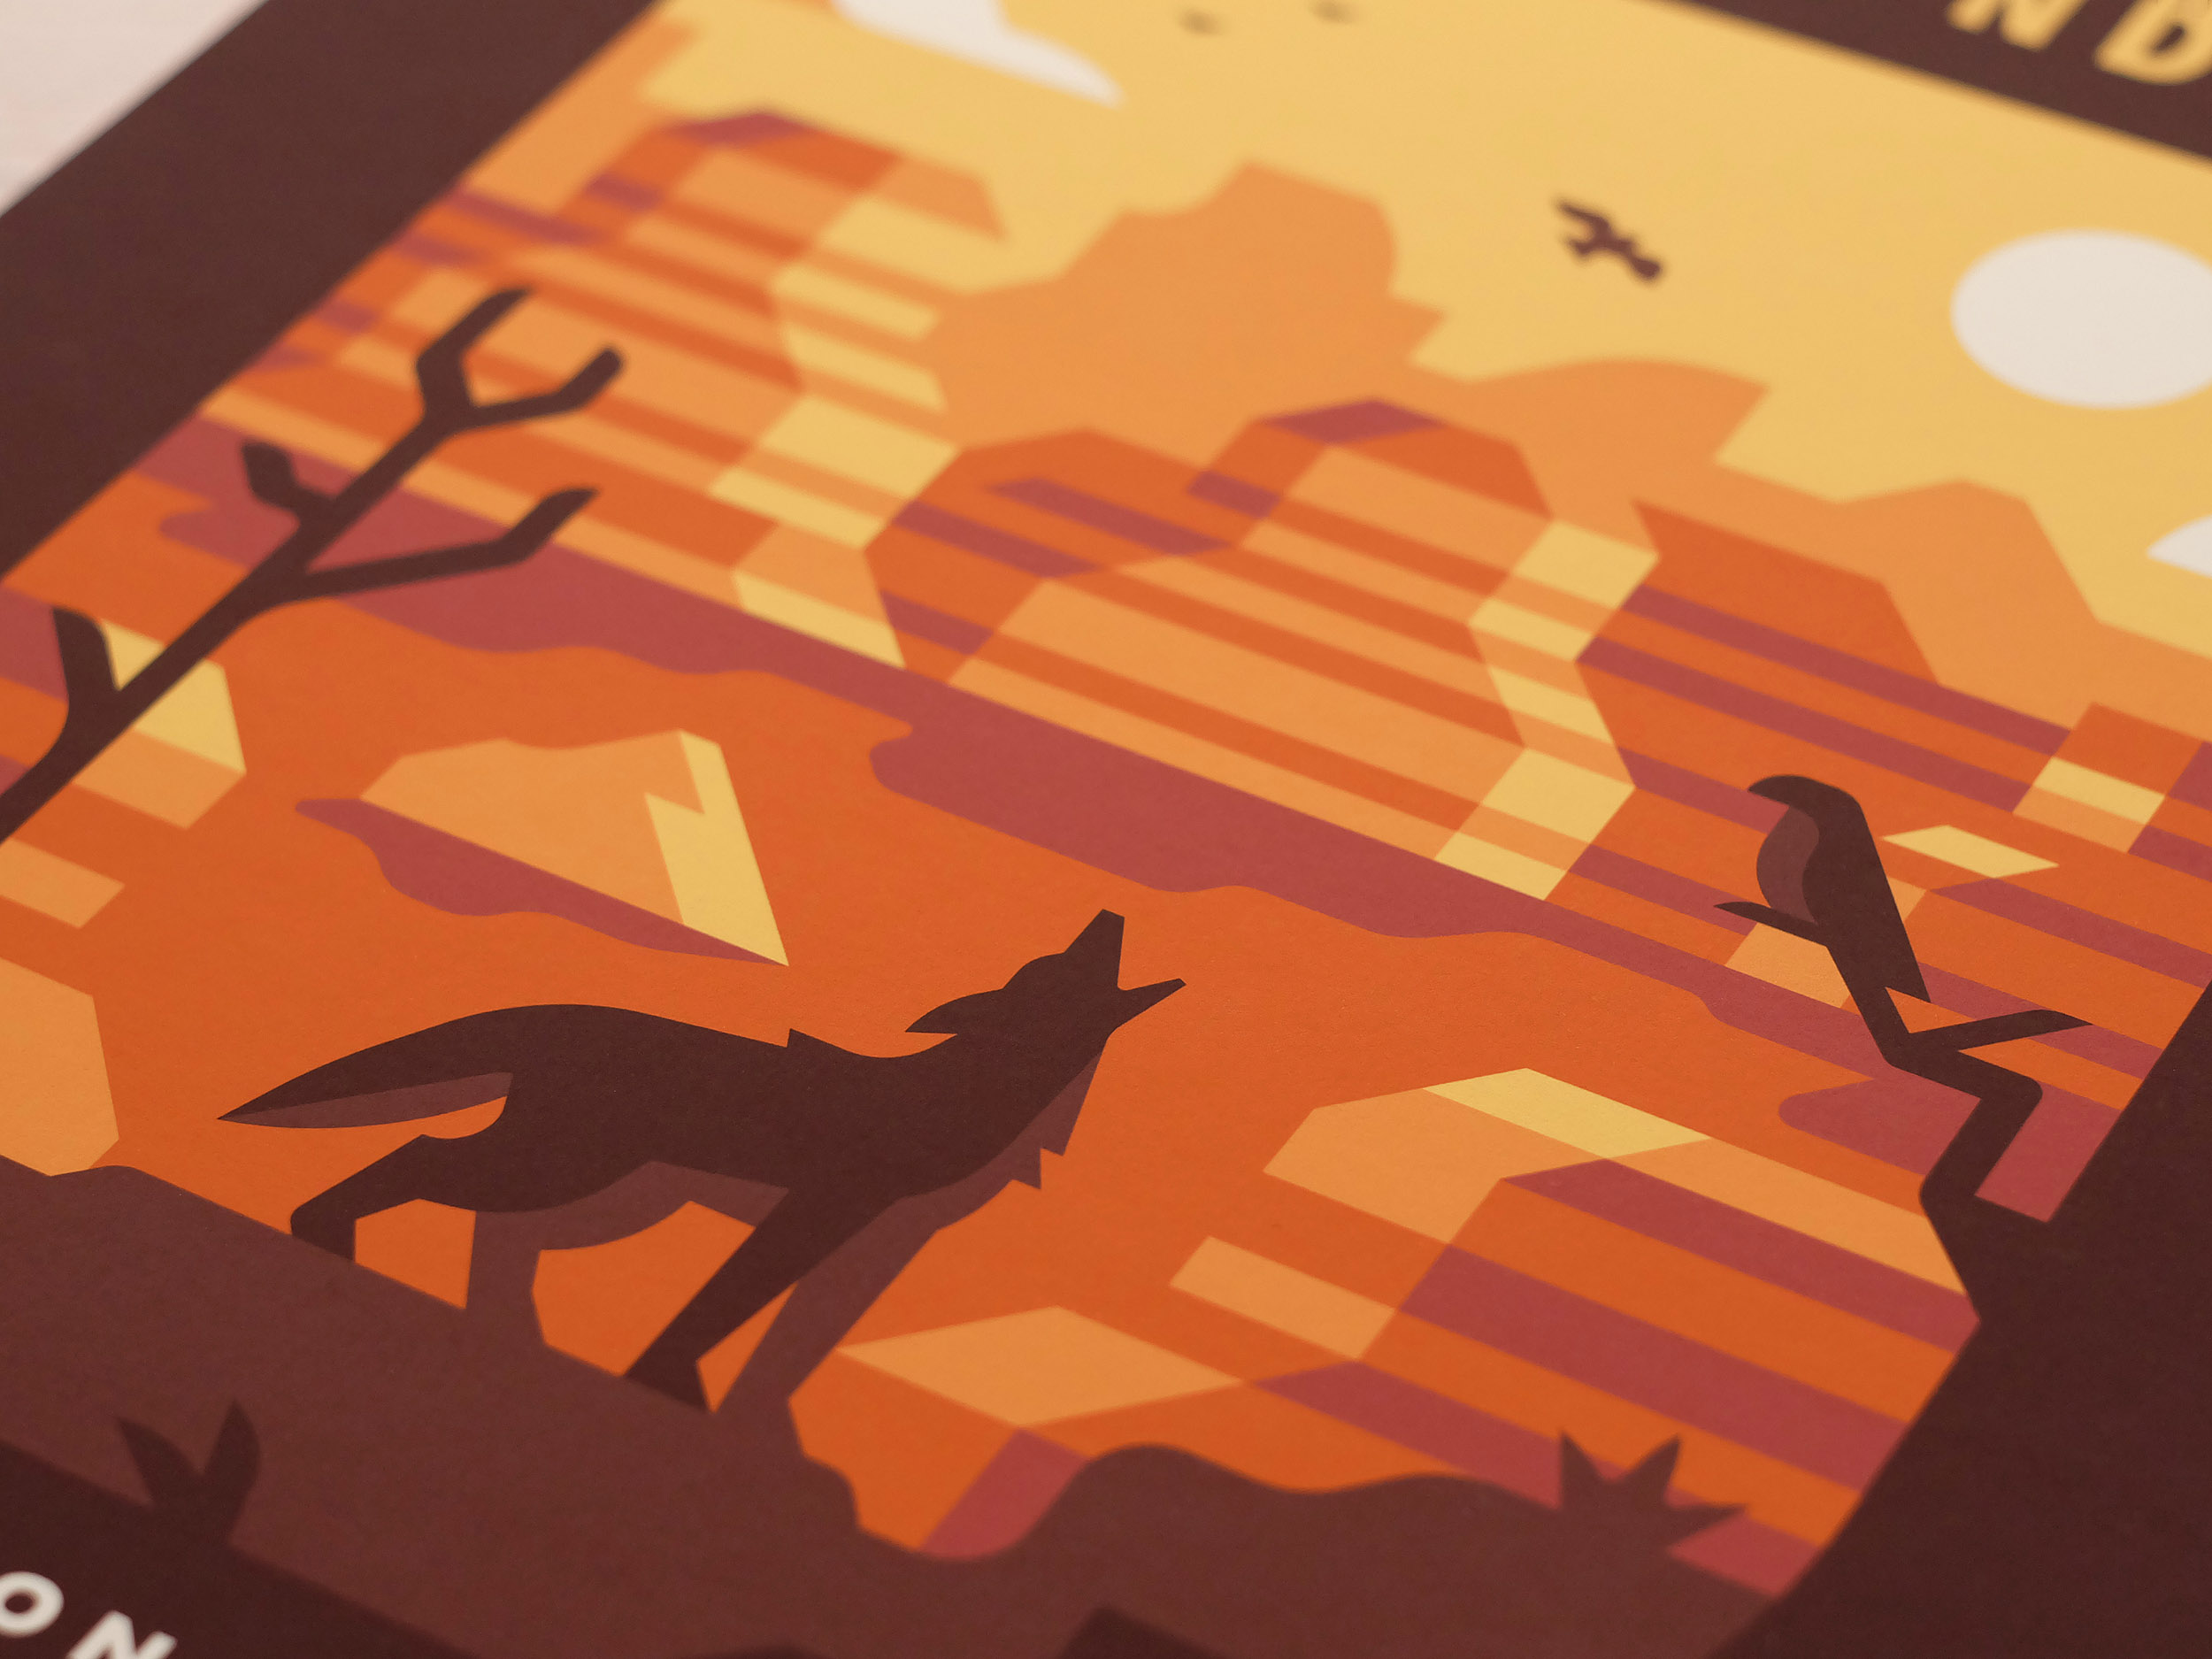 Badlands National Park poster photo by Matt Anderson and Canopy Design. Limited color illustration of a desert canyon, bird, trees and a coyote.